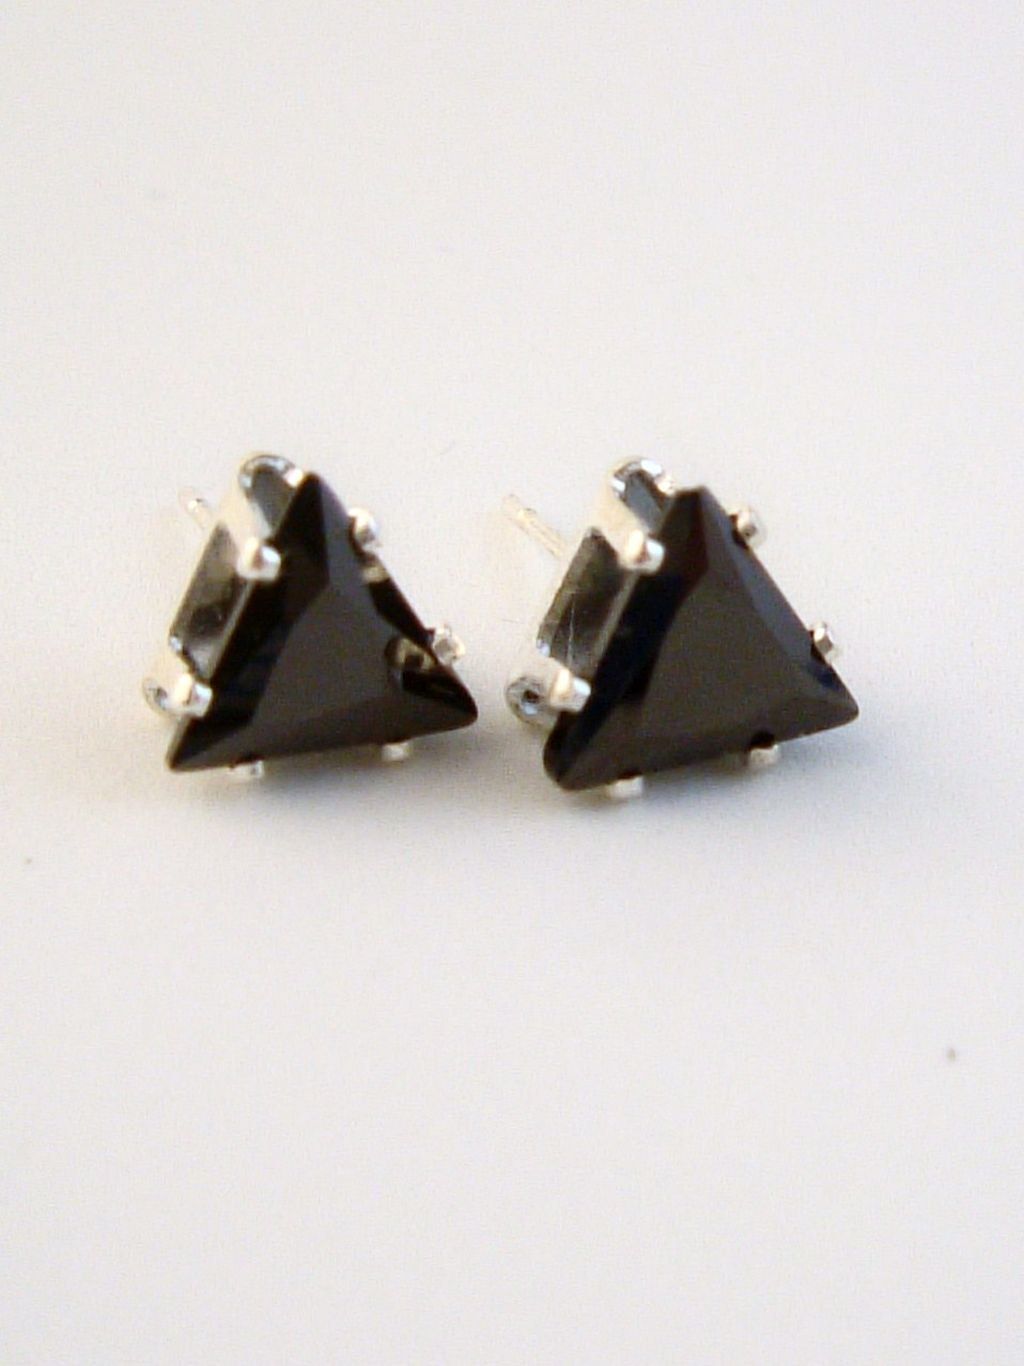 Black Diamond Triangle Cut Silver Stud Earrings Genuine CZ Cubic Zirconia